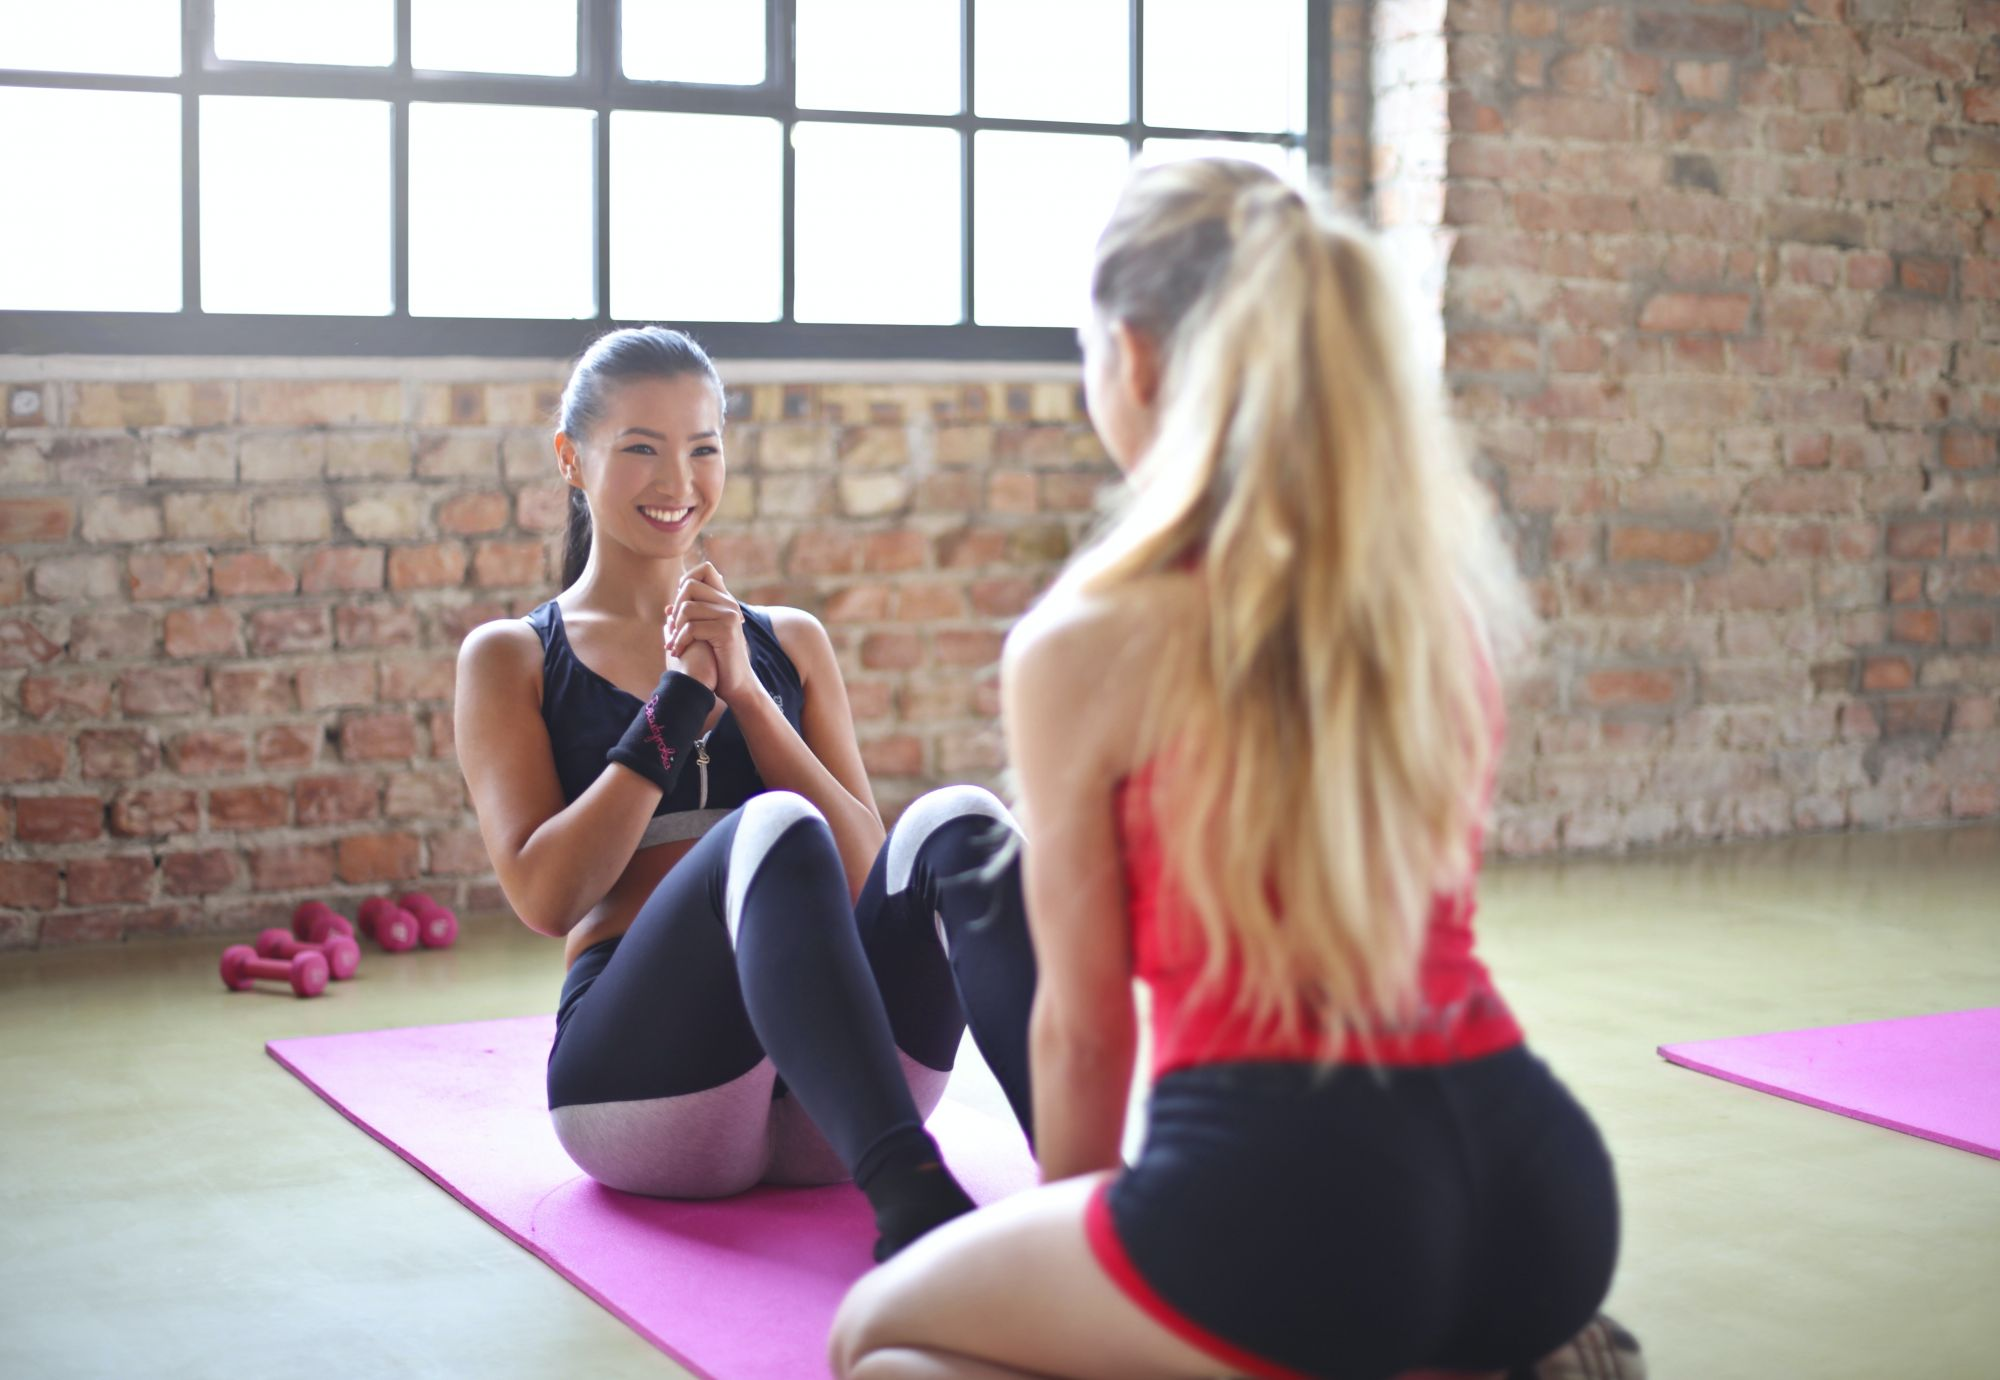 7 Fitness And Nutrition Experts Share Their Advice on How To Stay Active and Healthy